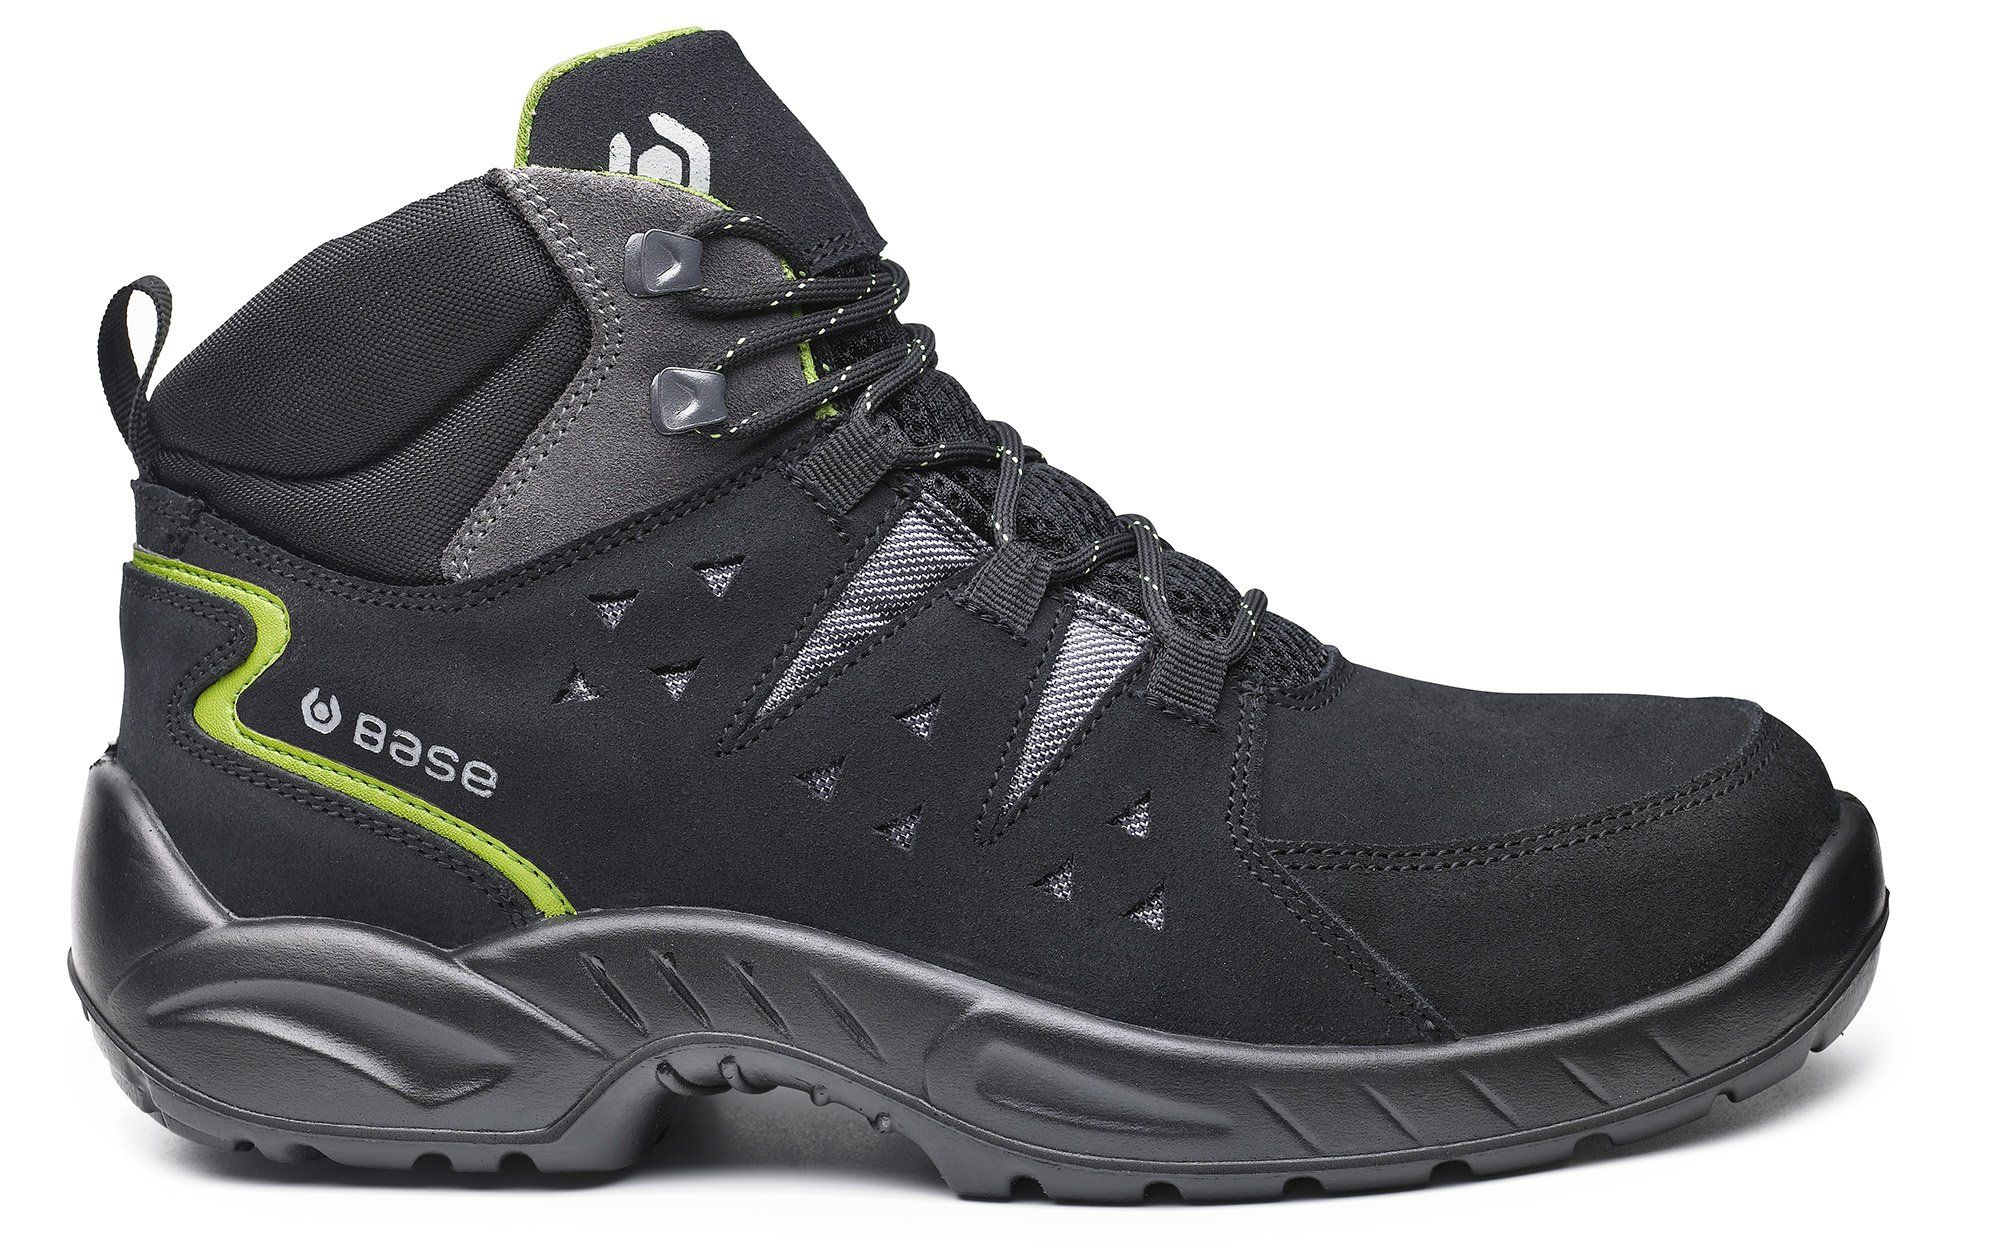 Base Protection Safety Work Shoe/ Boots, Steel toecap